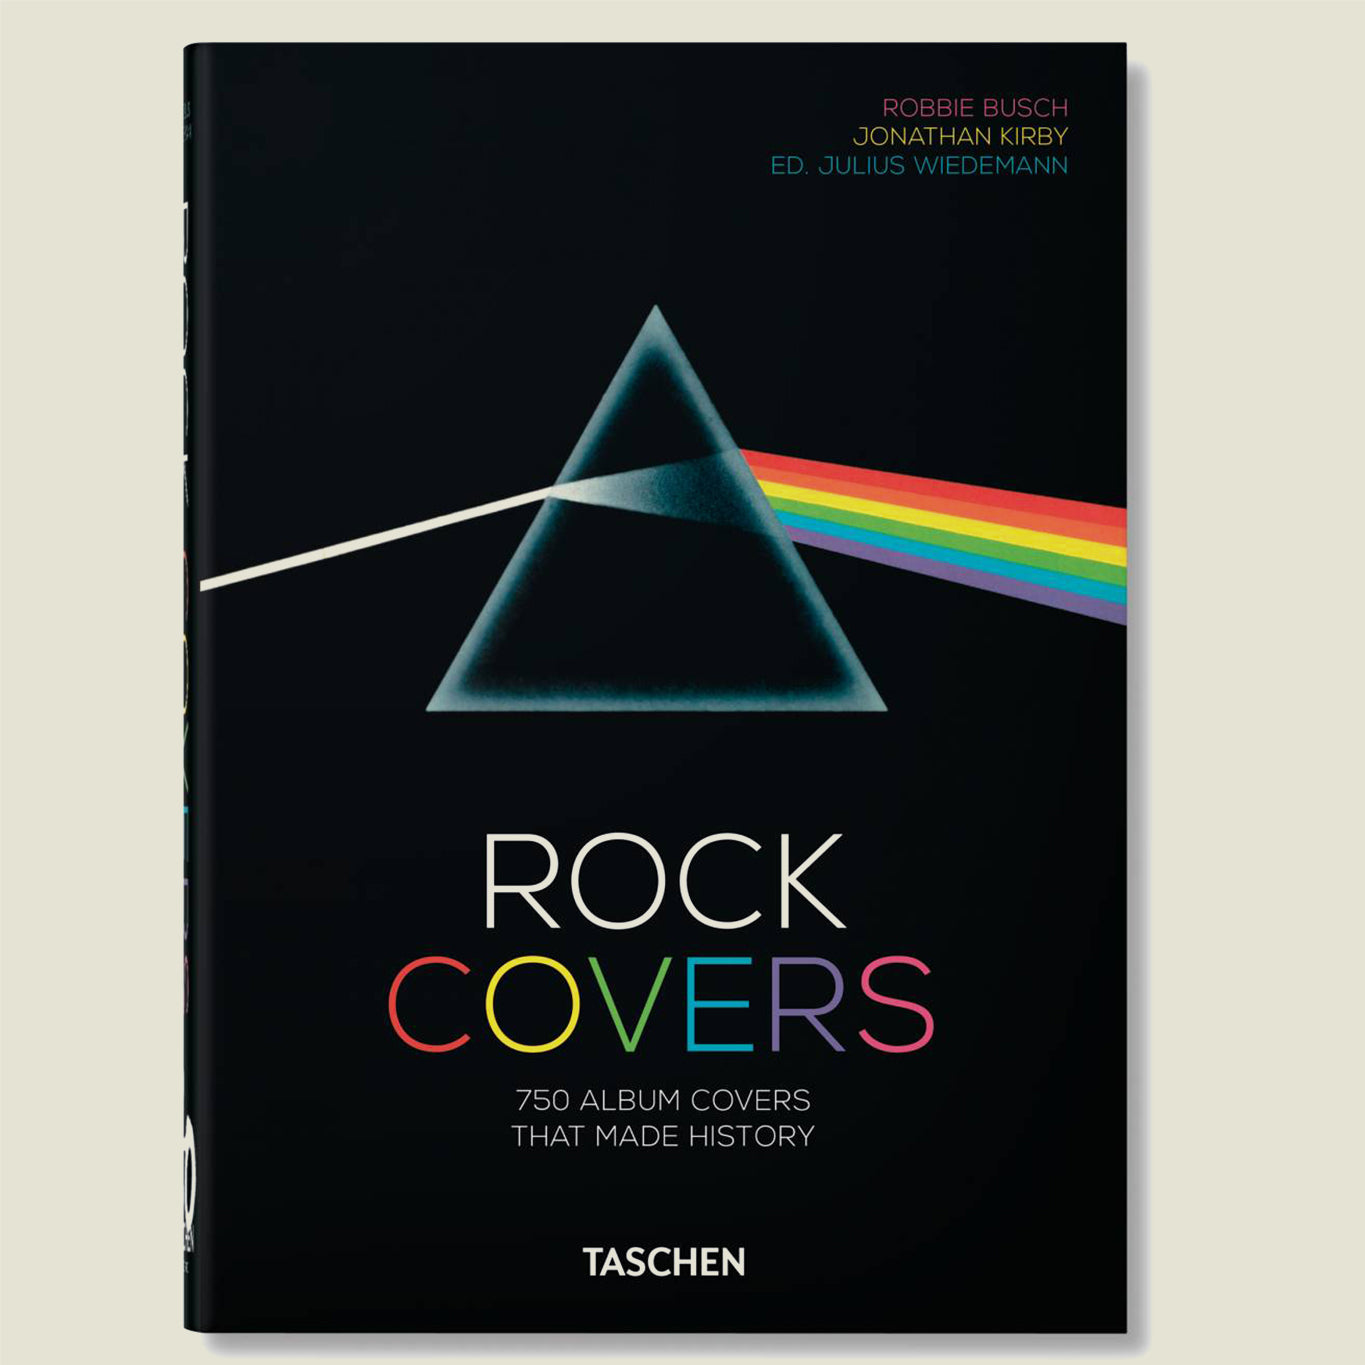 Rock Covers (40th Anniversary Edition) - Blackbird General Store